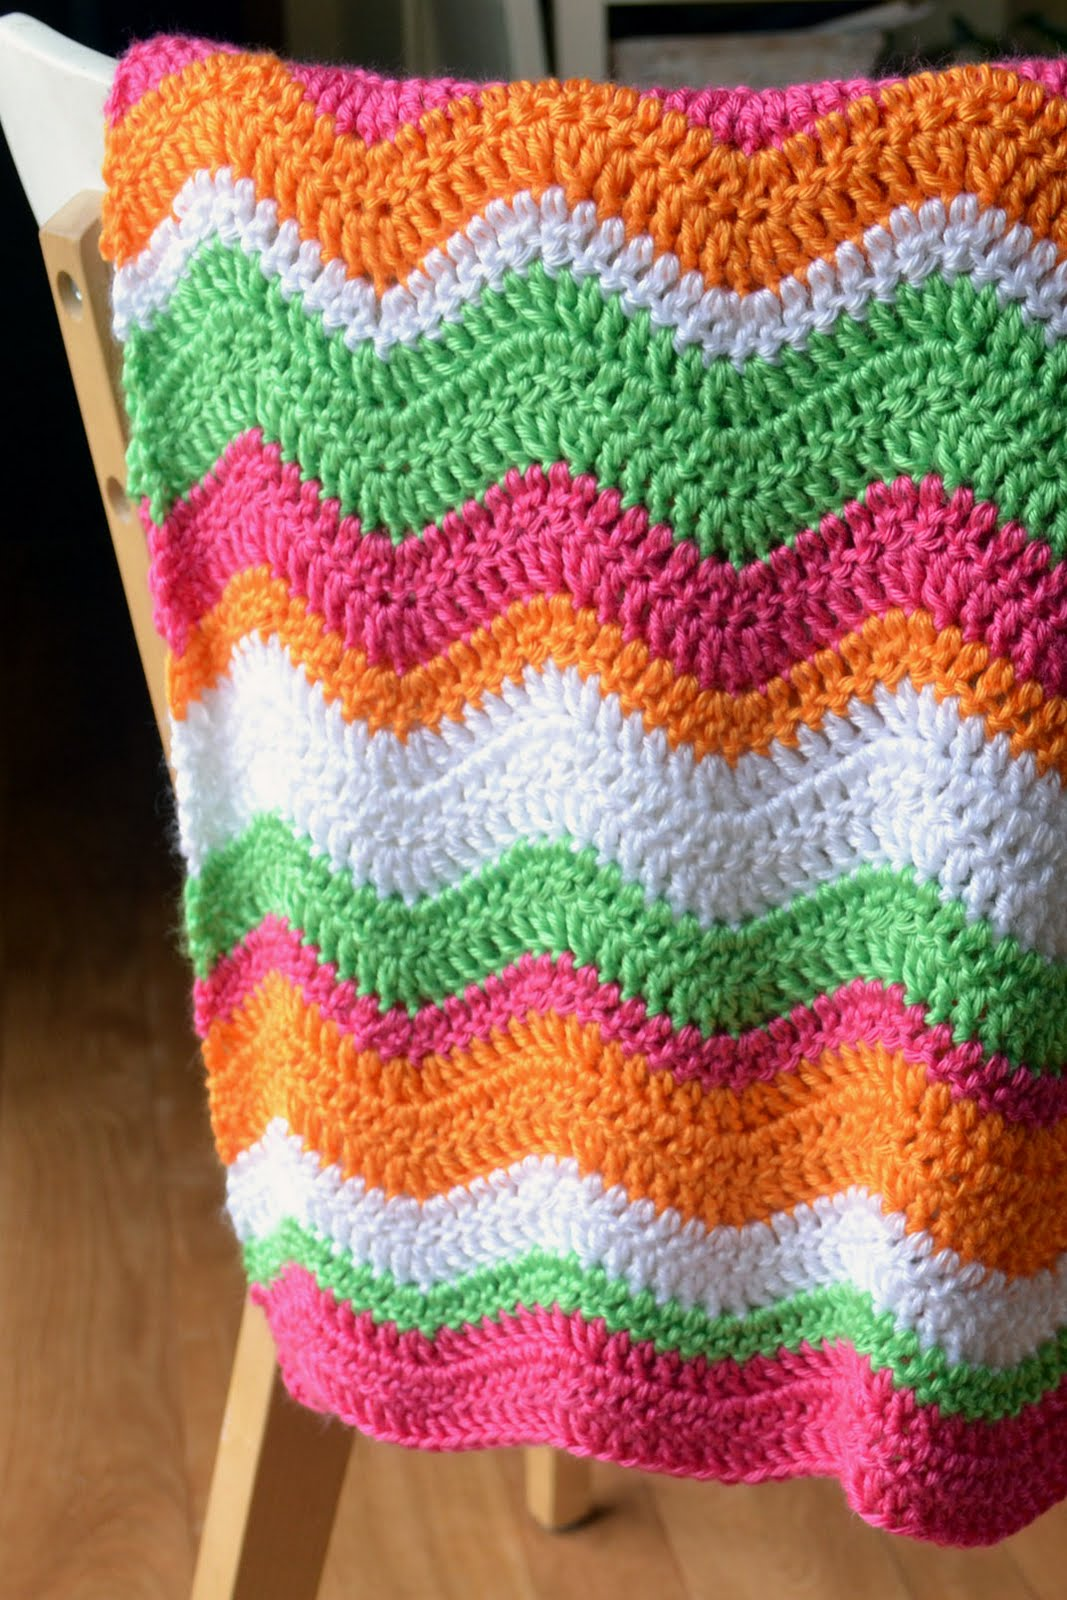 Free Crochet Baby Afghan Edging Patterns : Crochet in Color: Instructions for the Brite Baby Ripple